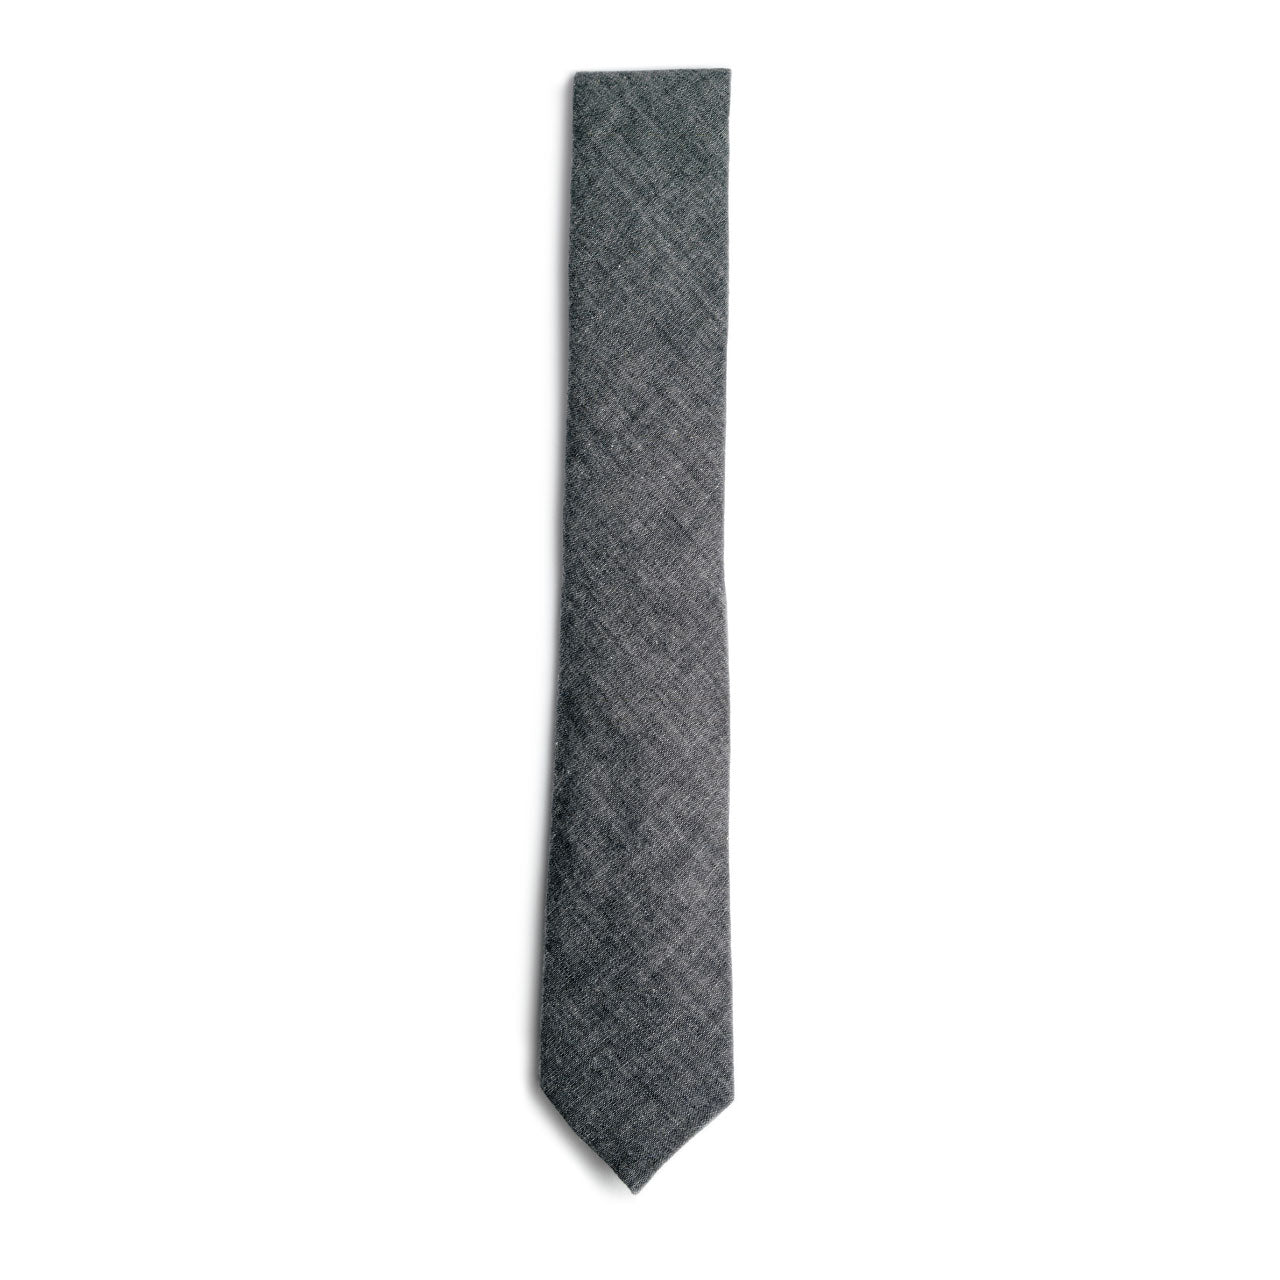 The Hill-side Chambray Tie